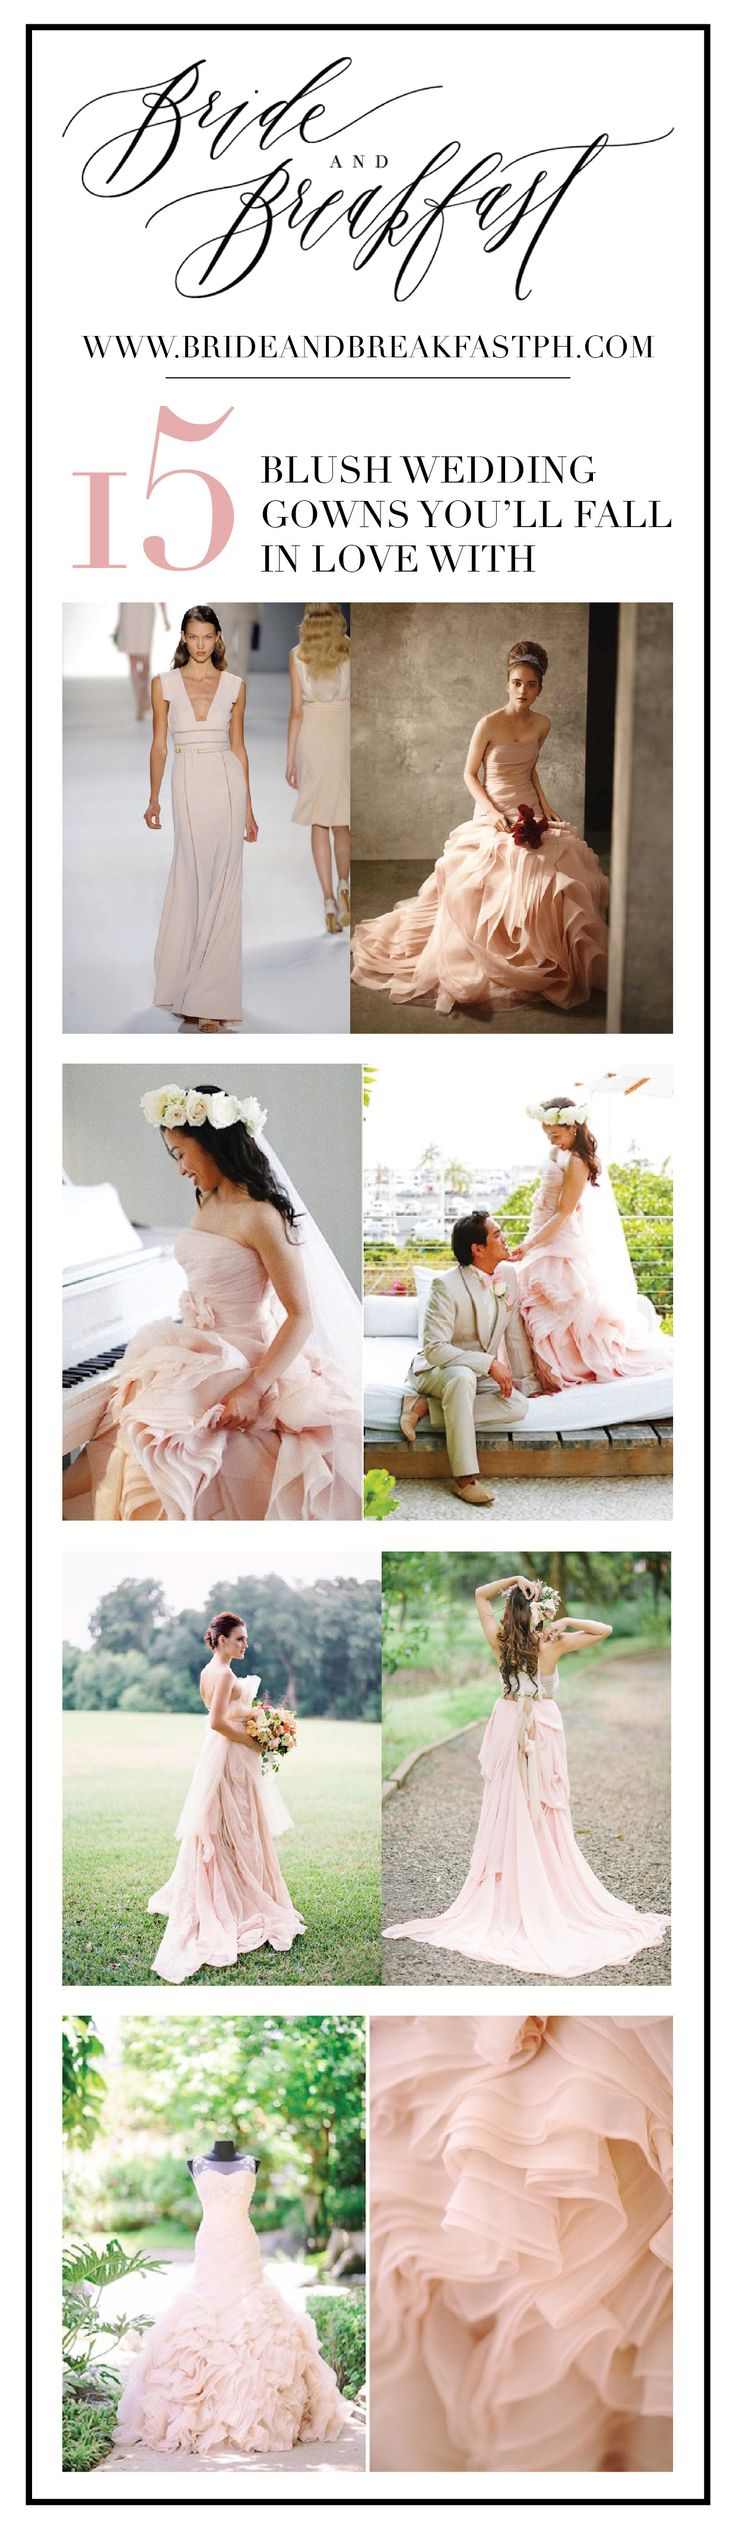 15 Blush Wedding Gowns You'll Fall In Love With   Tips and Trends